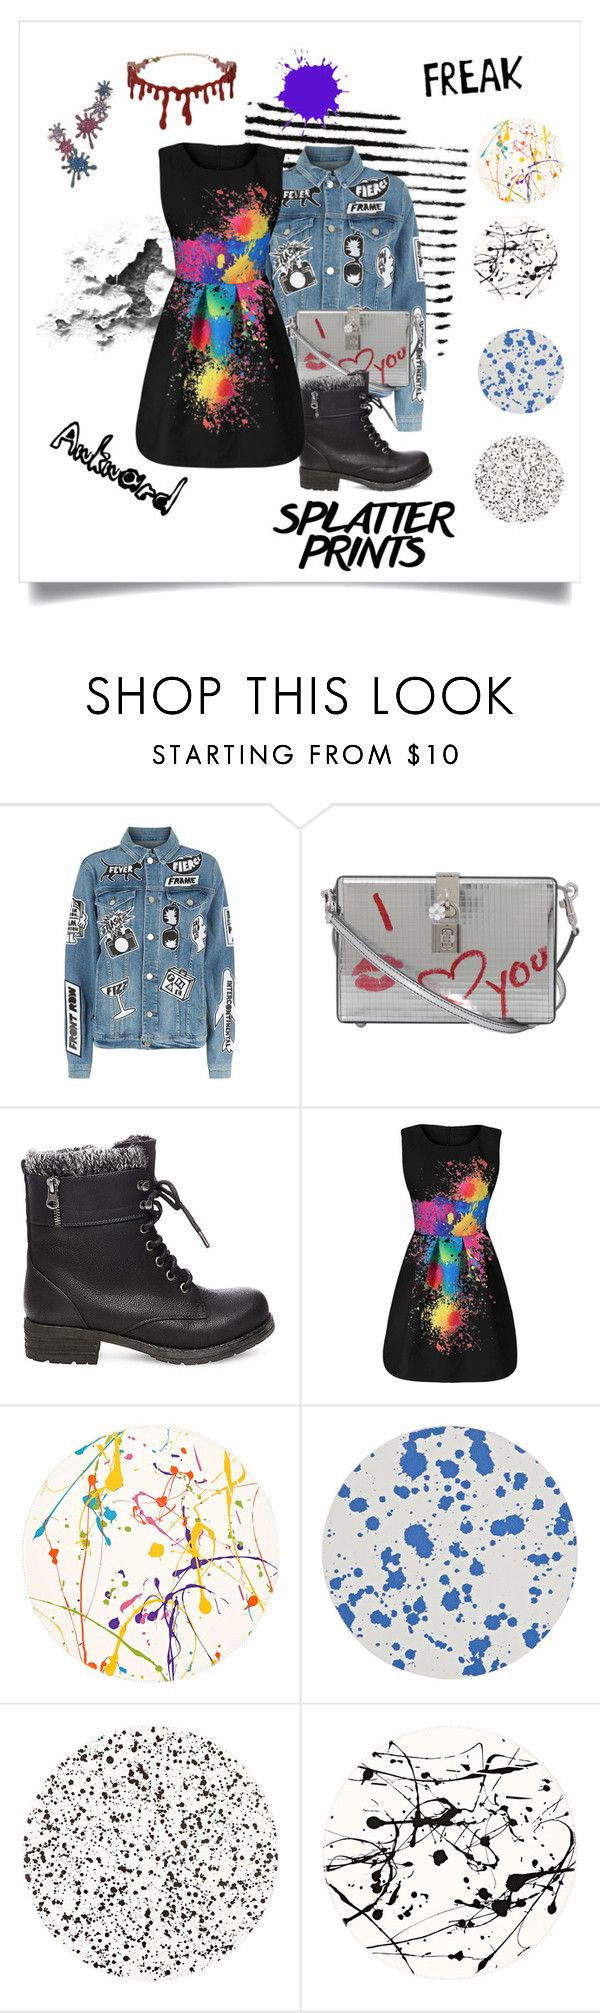 """Splat"" by devrene ❤ liked on Polyvore featuring Frame, Dolce&Gabbana, Steve Madden, Lisa Perry, Tisch New York and Joanna Laura Constantine"